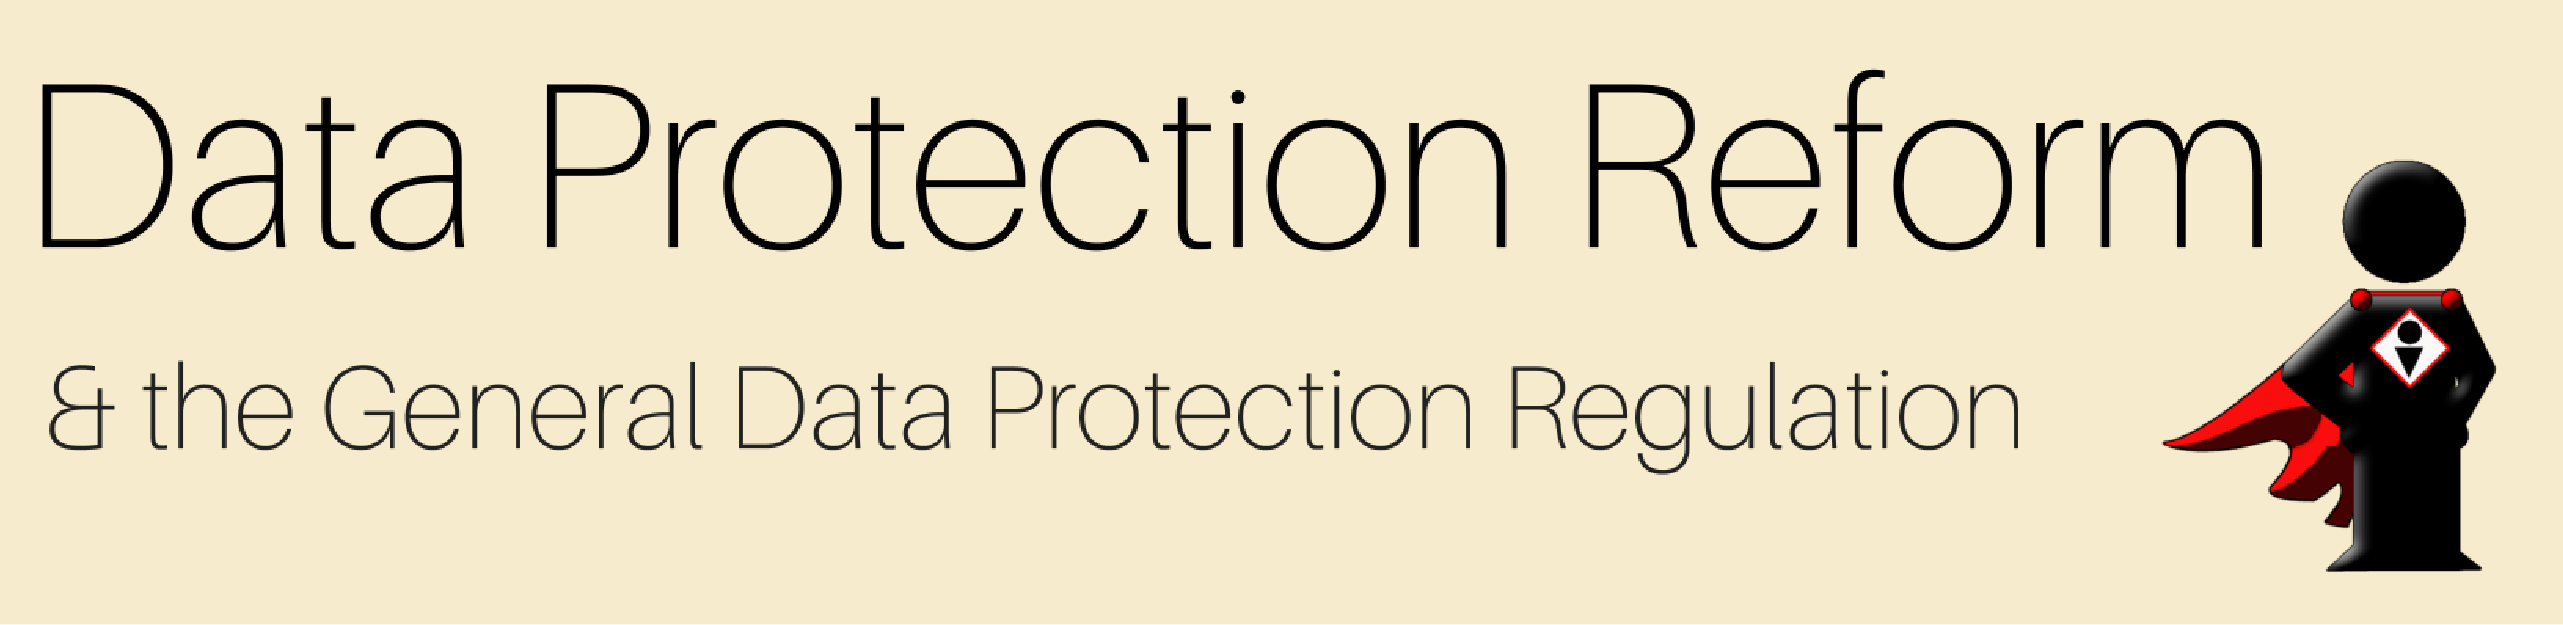 Data Protection Reform and GDPR